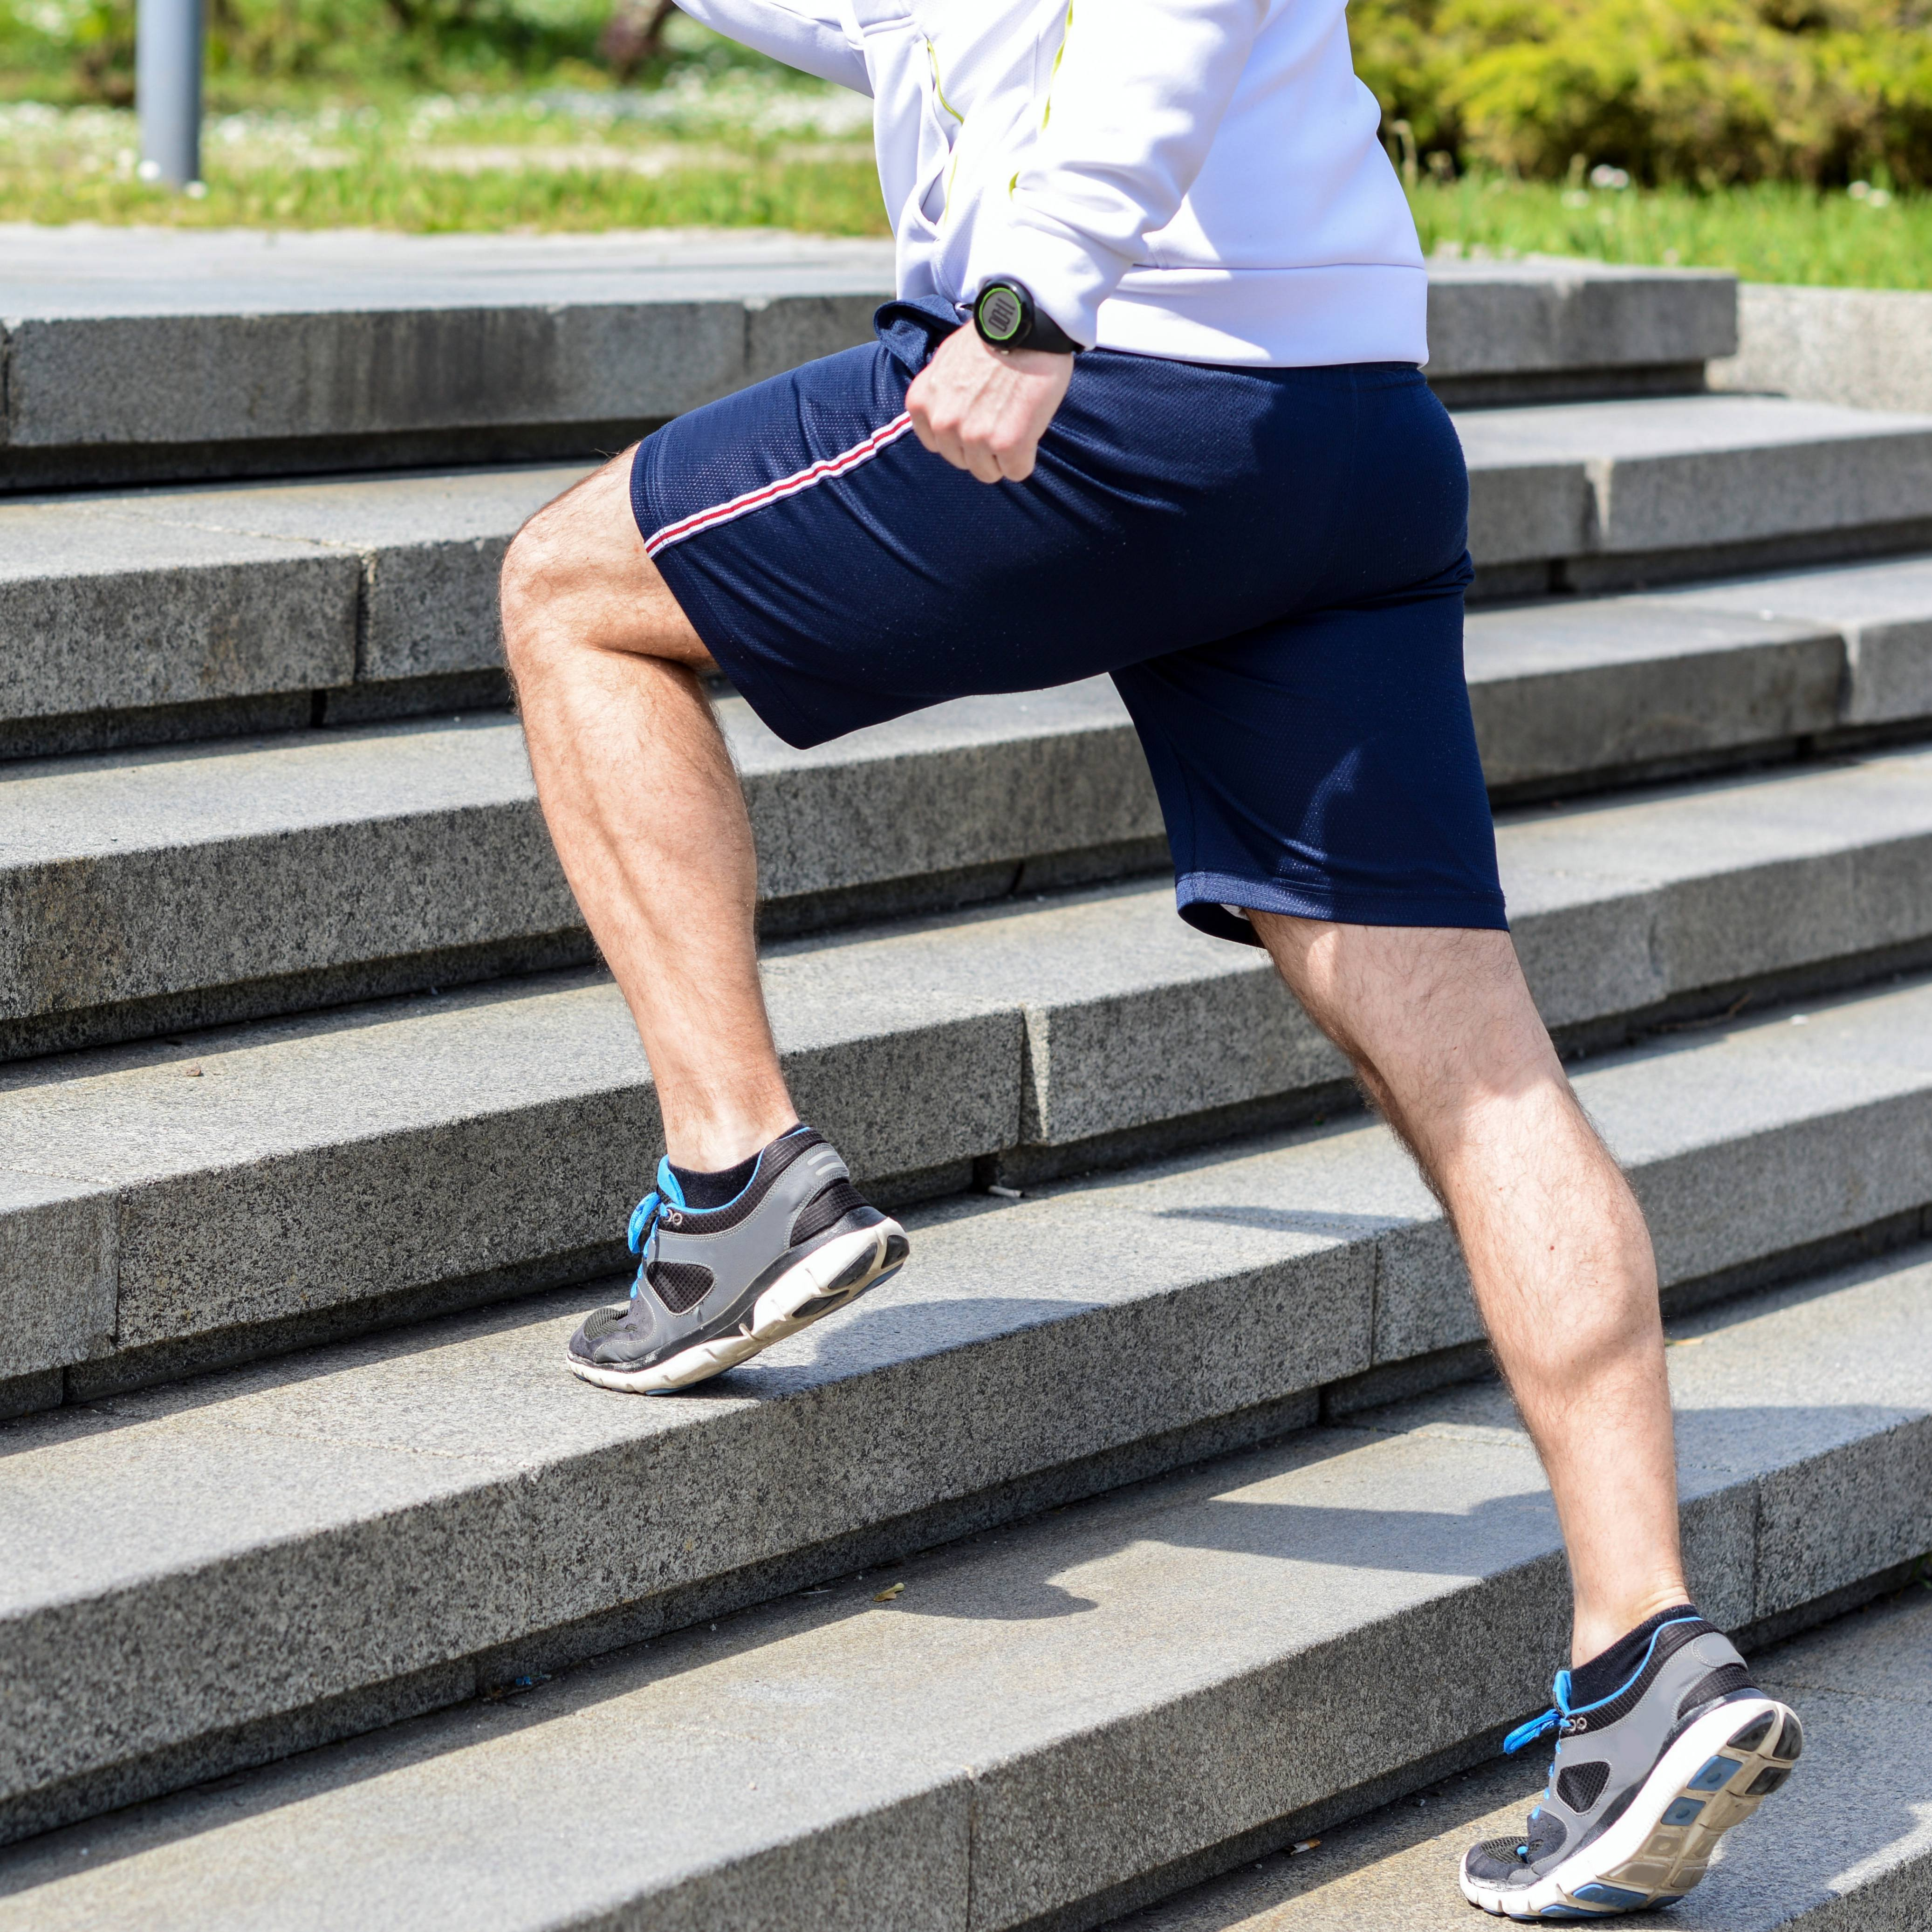 a man exercising outside and running up stairs, perhaps for interval training